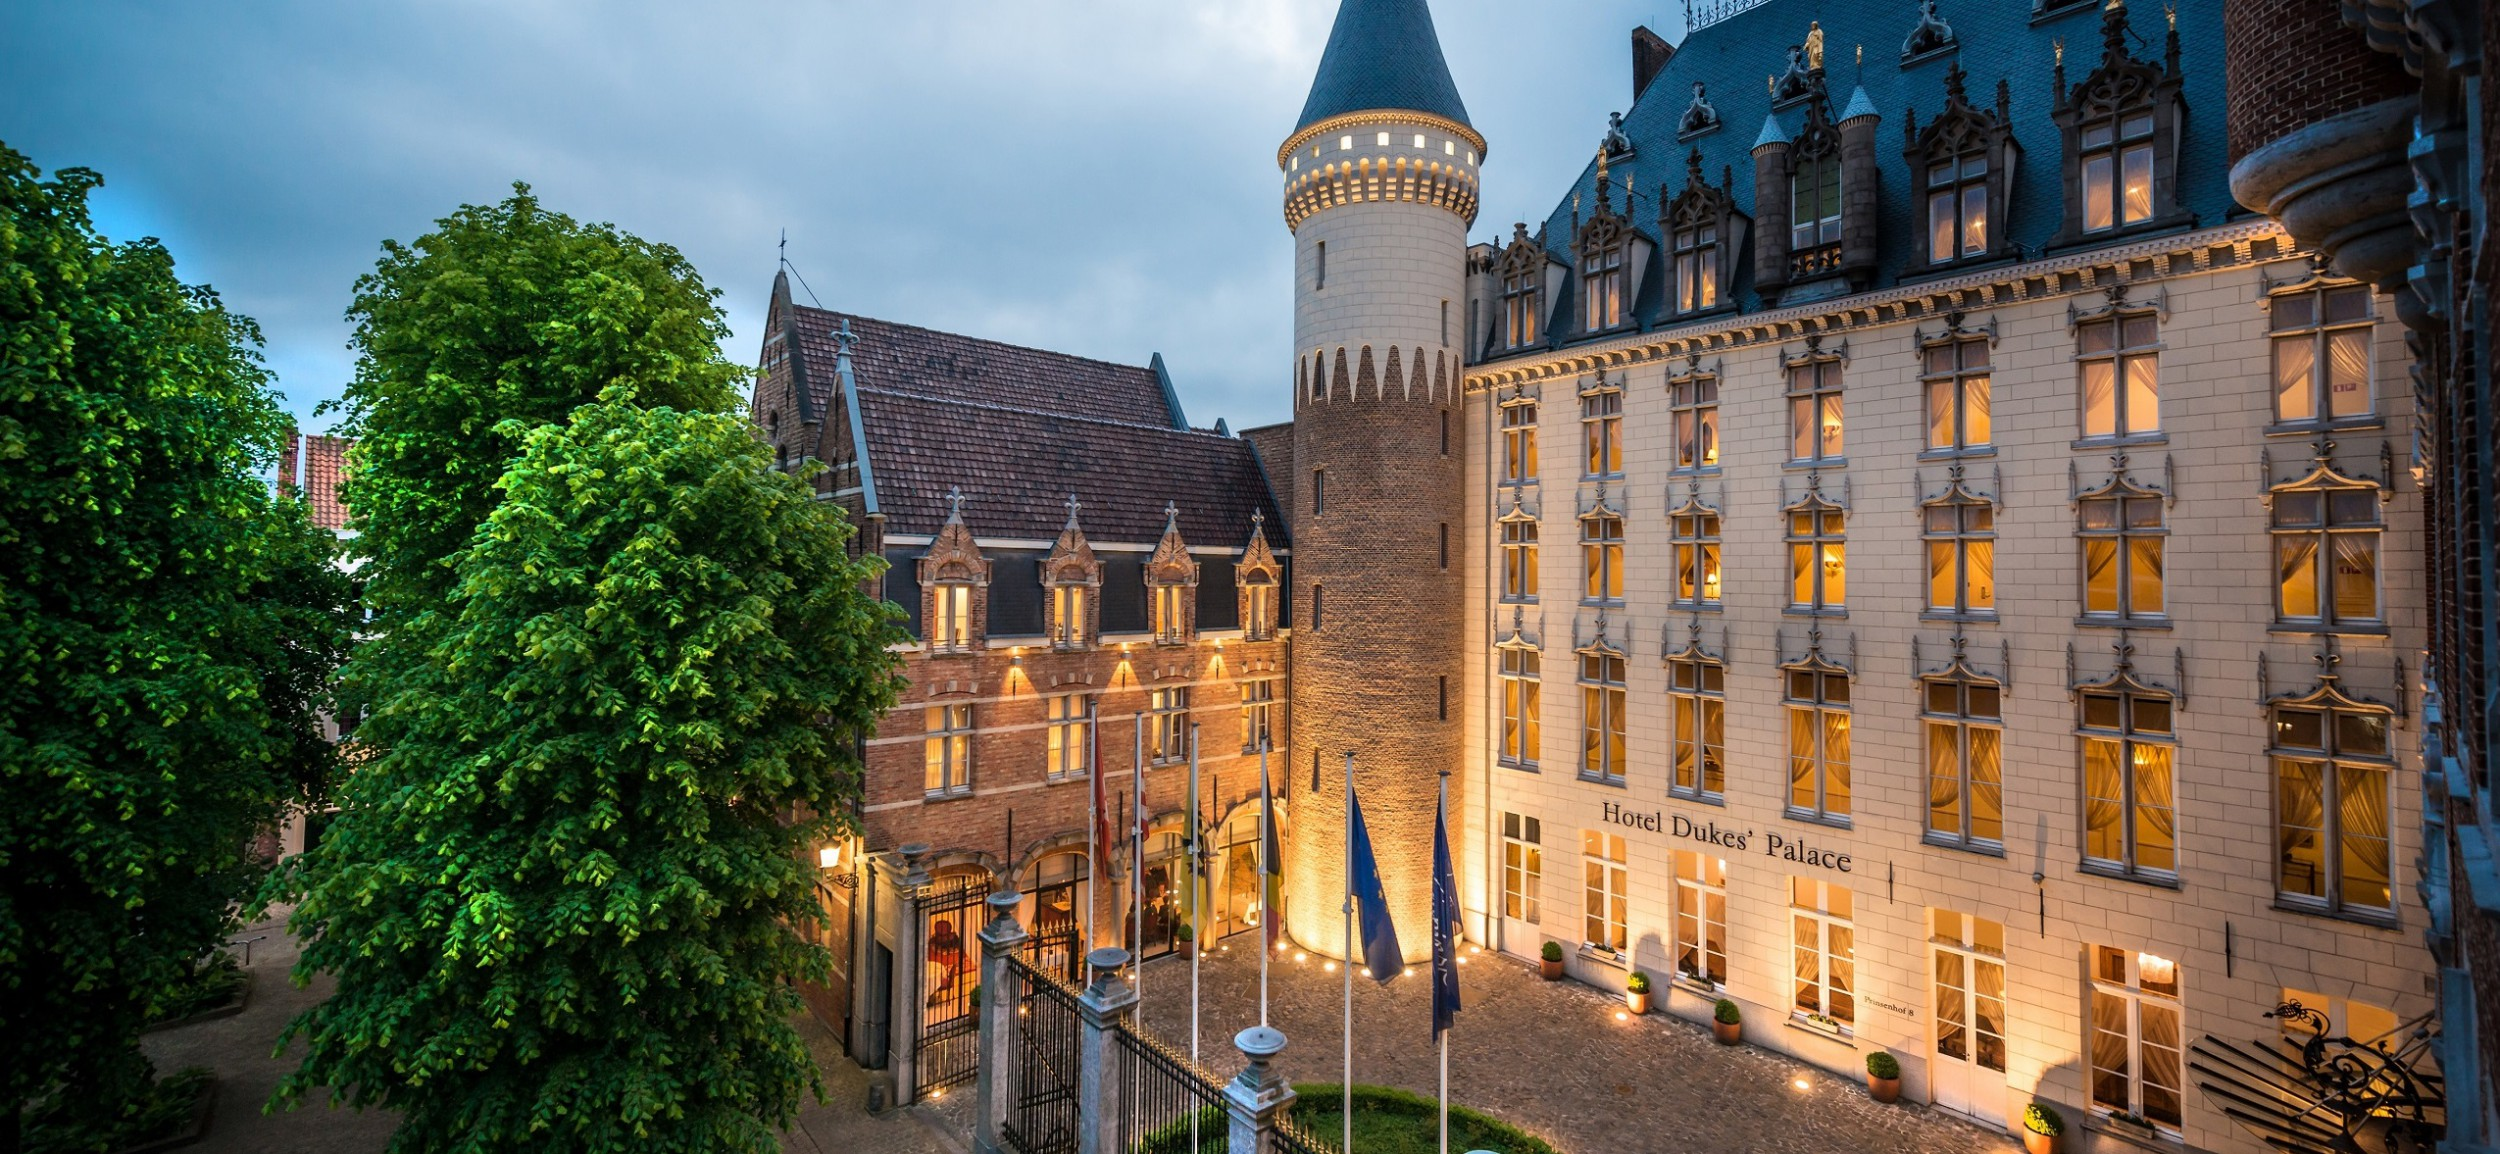 Hotel Duckes' Palace Bruges (4)